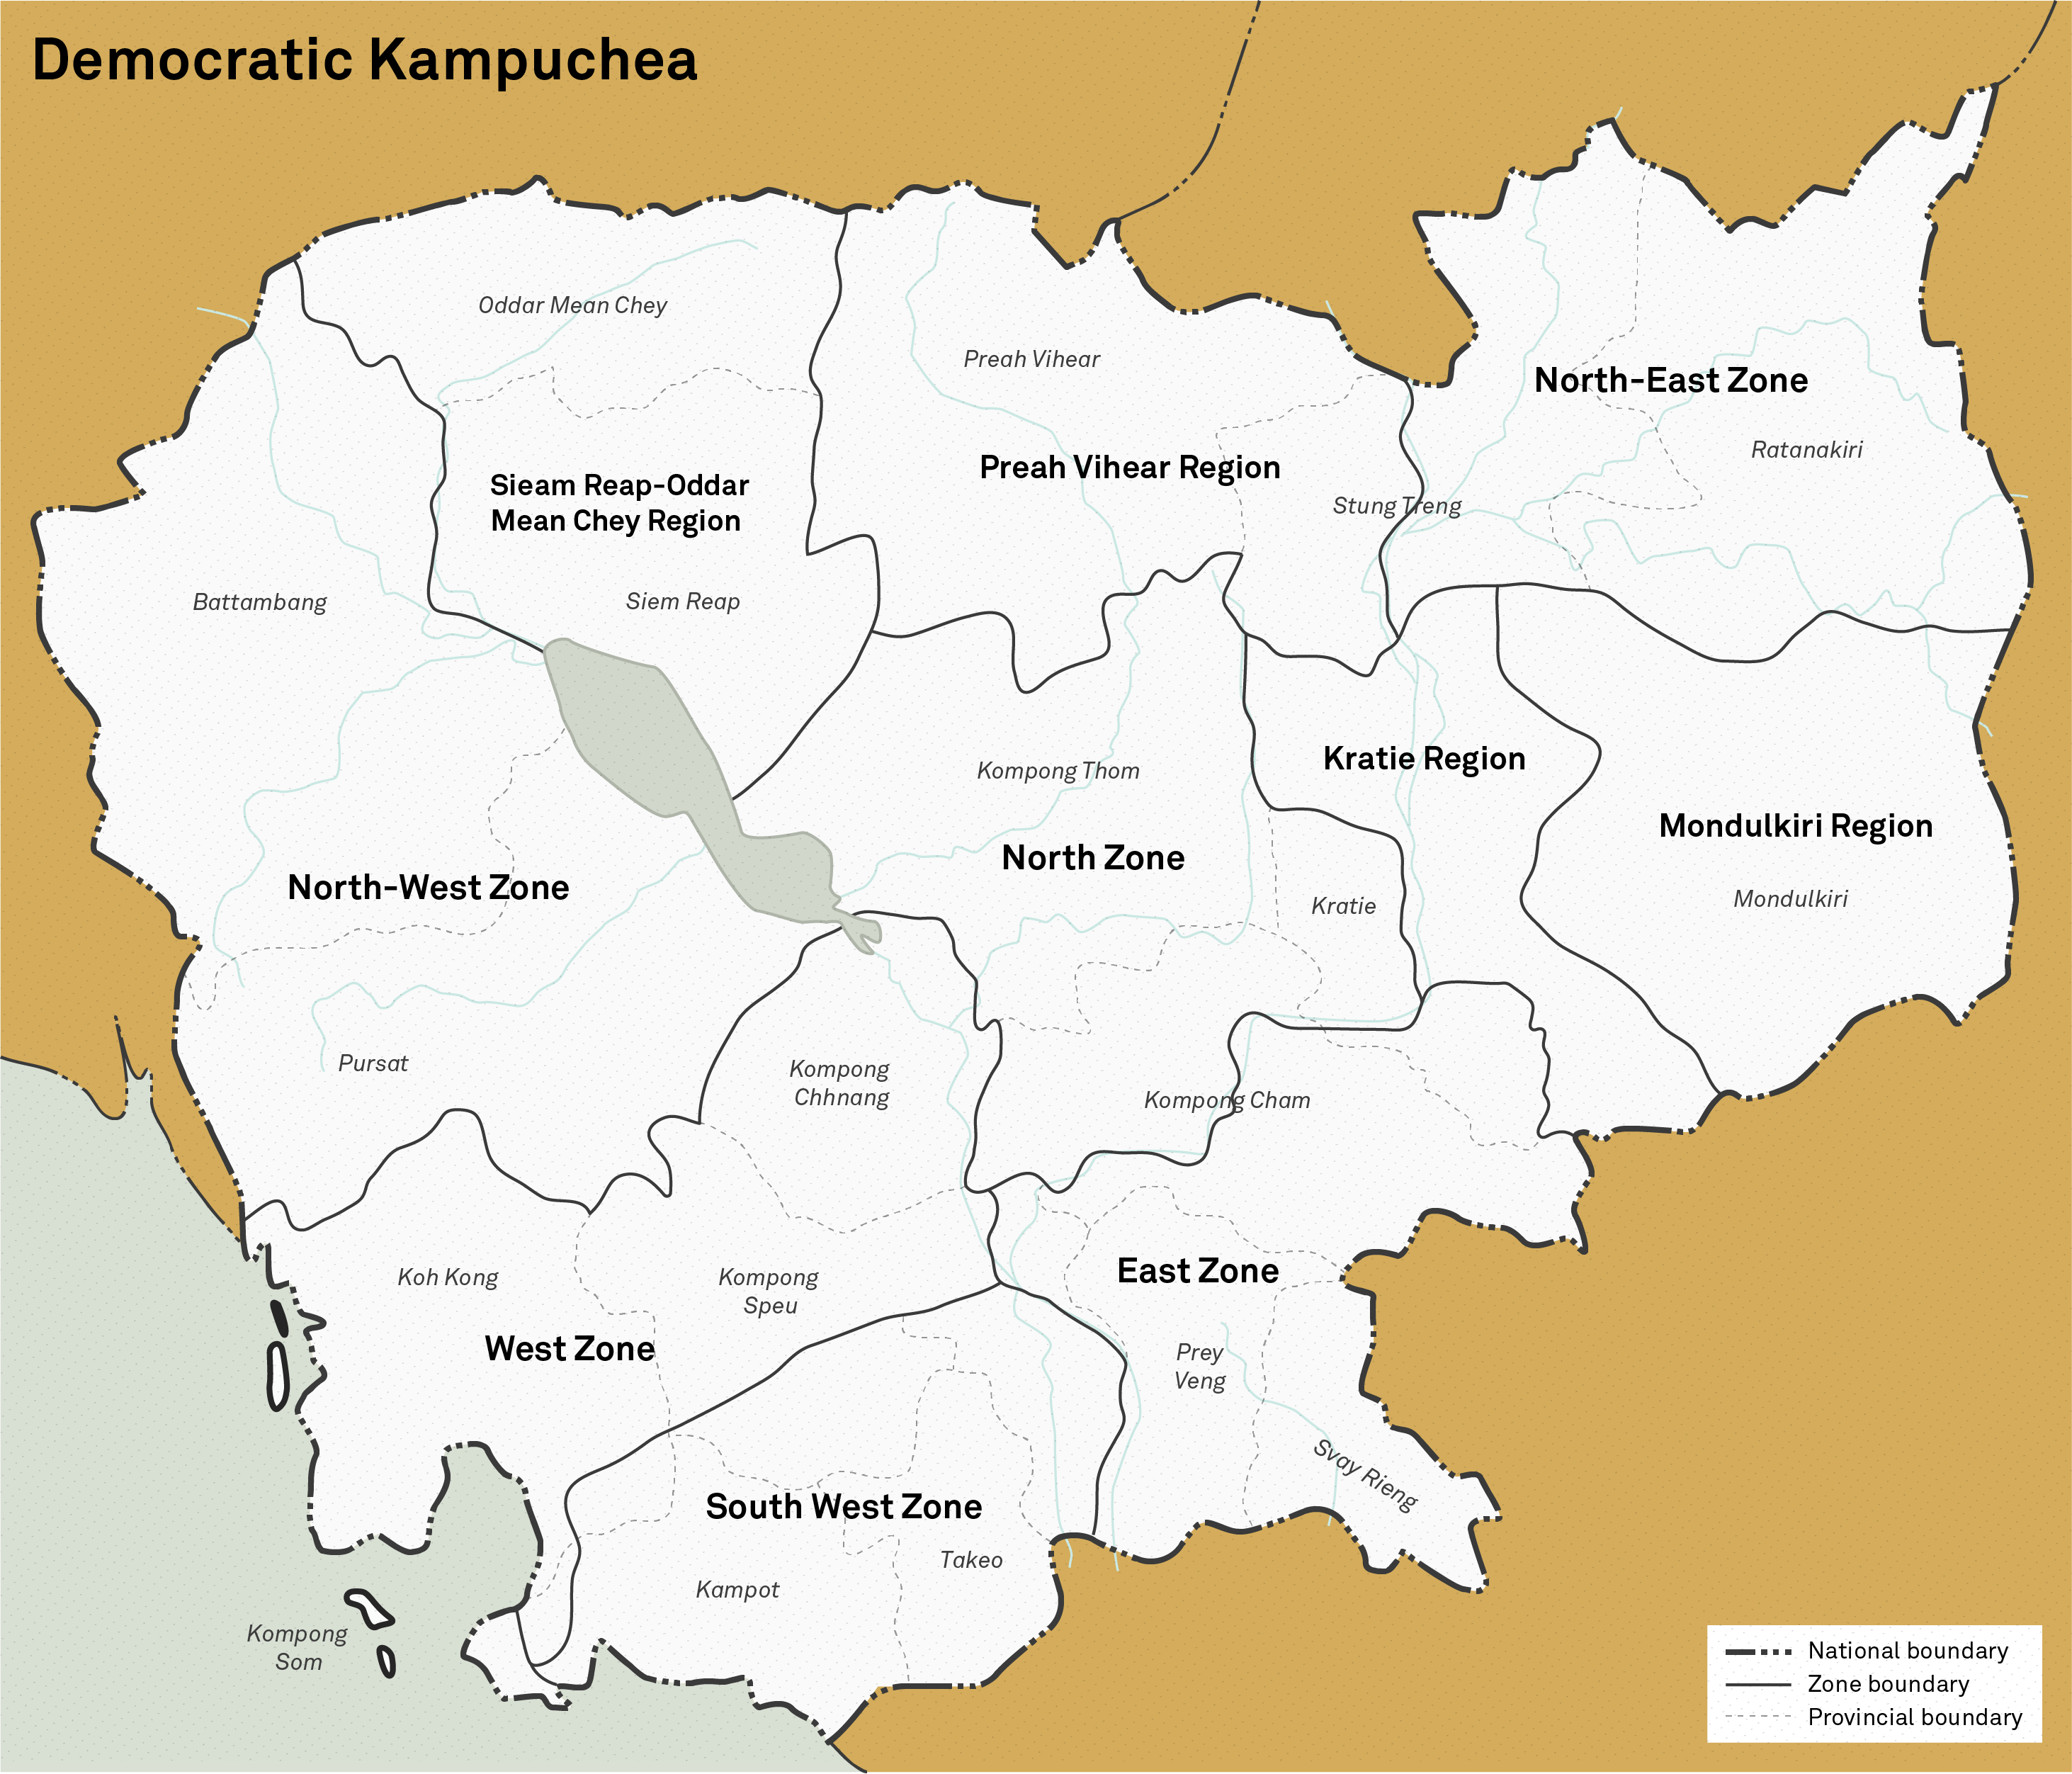 An illustrative map of the Democratic Kampuchea divided into administrative zones, based on the original 1976 map used by the regime.